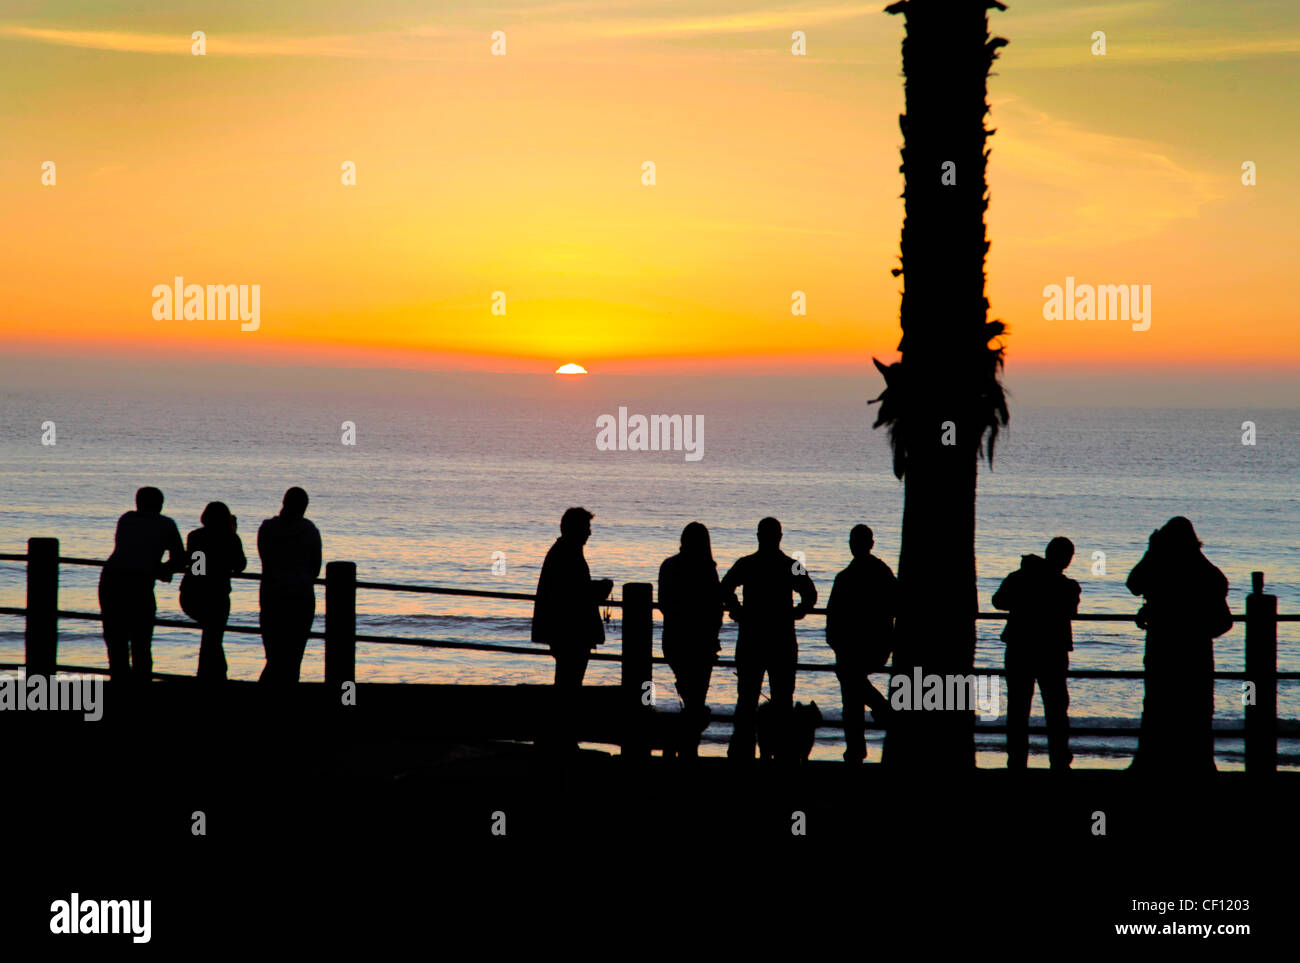 WATCHING SUNSET OVER THE PACIFIC,CALIFORNIA,USA - Stock Image